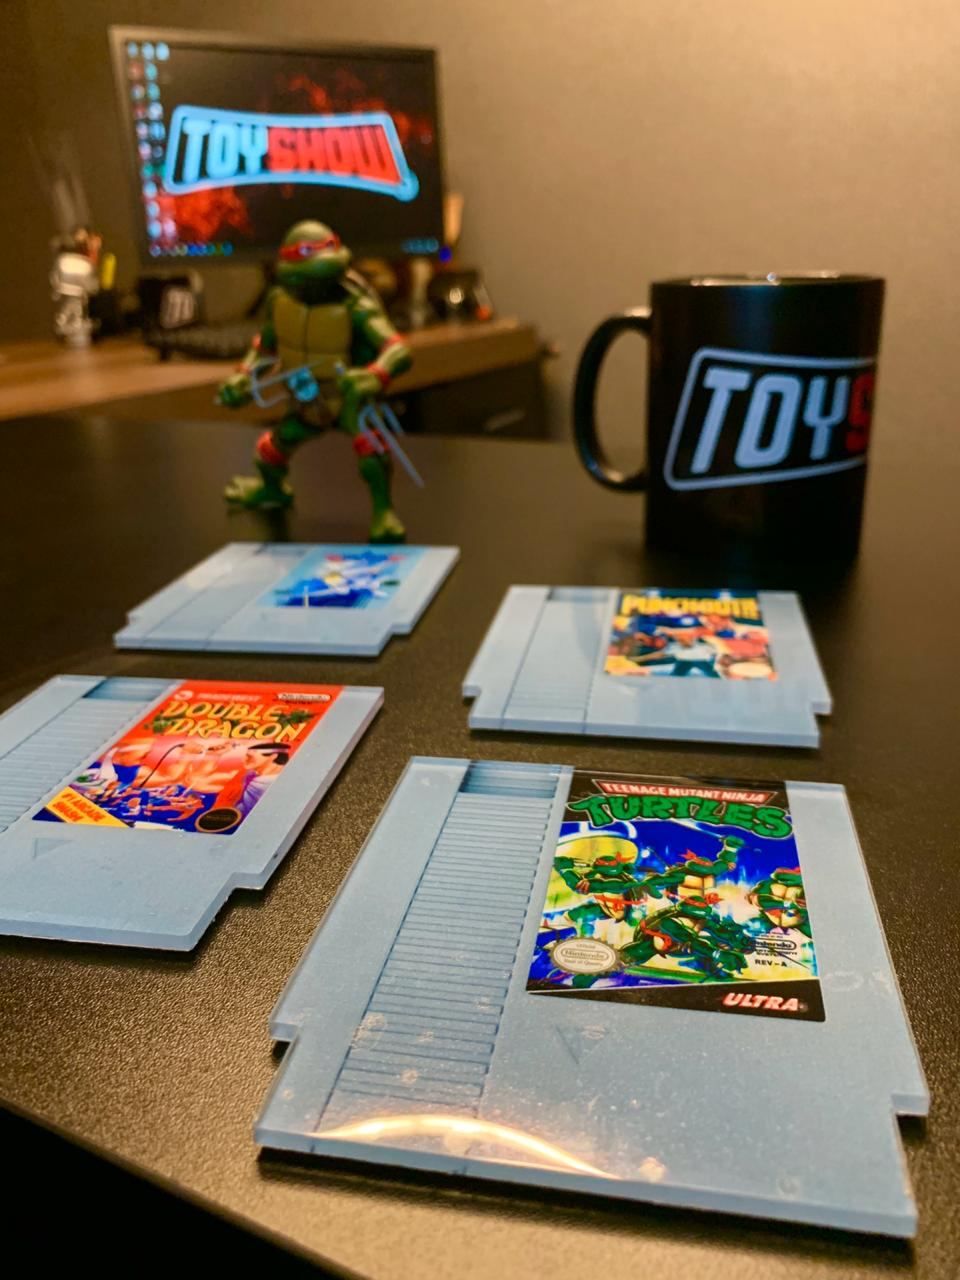 Porta Copos Fitas Top Gun, Teenage Mutant Ninja Turtles, Punch-Out e Double Dragon: Nintendo - Set com 4